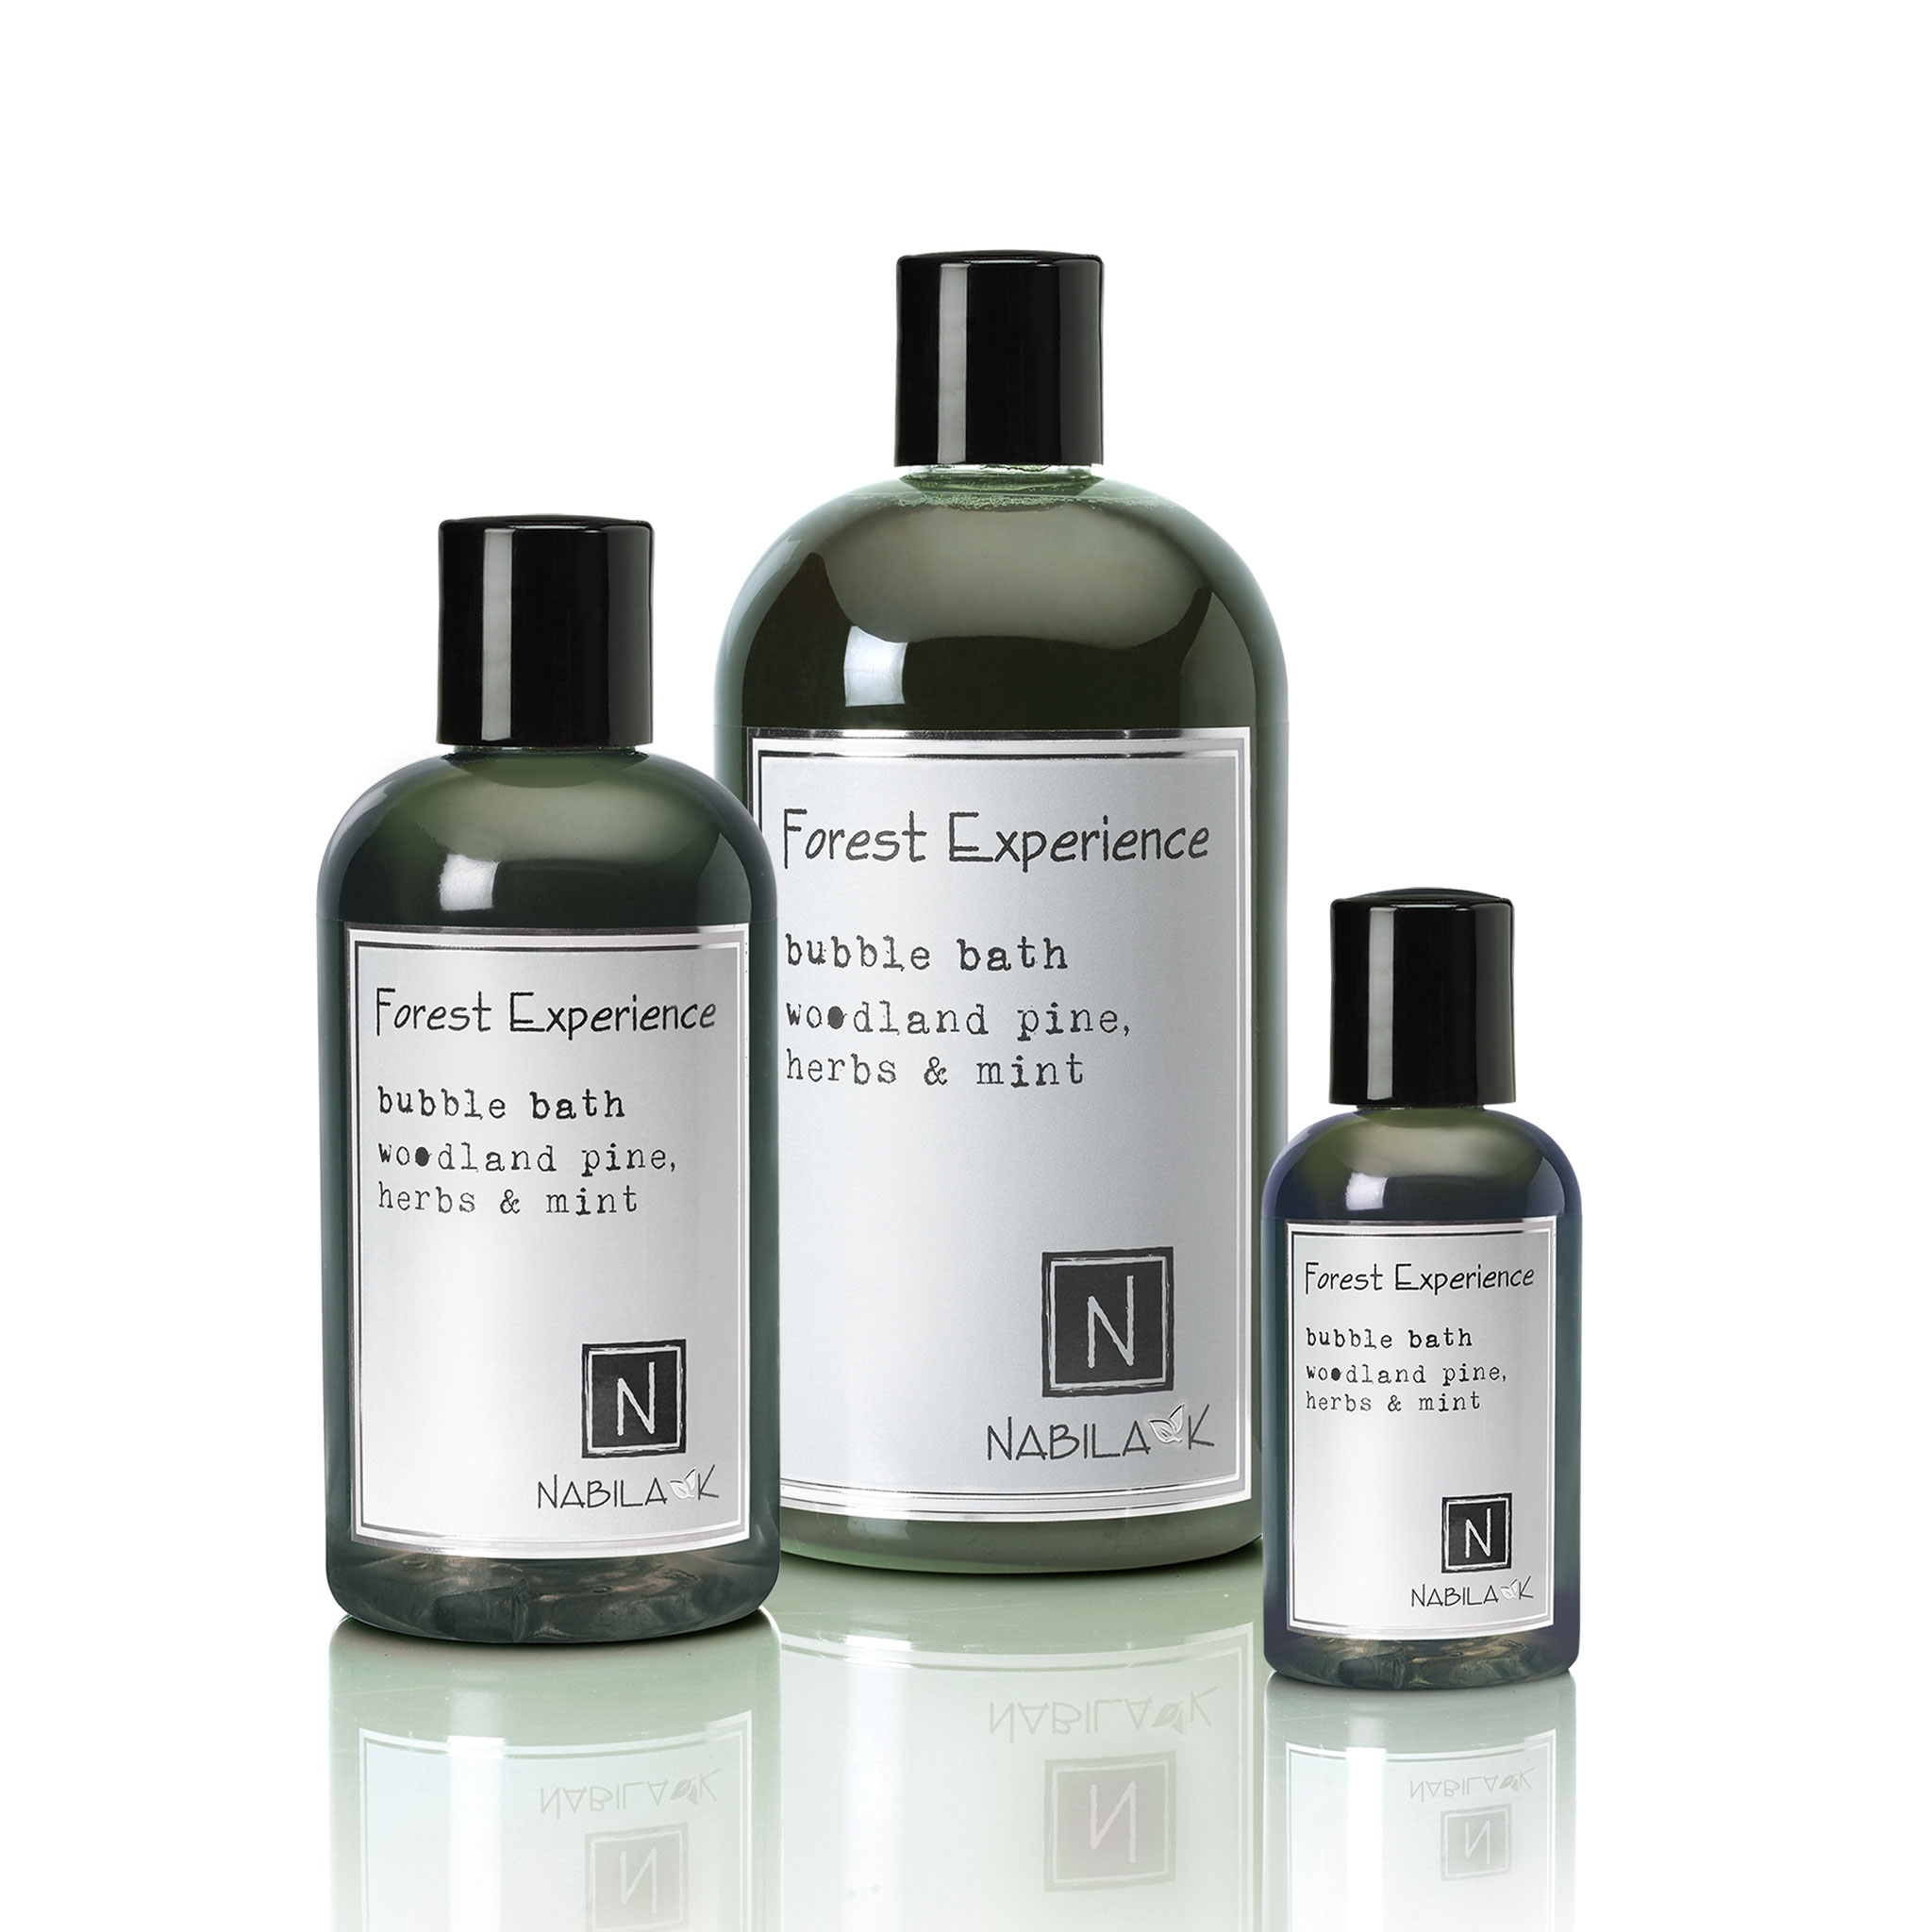 1 2oz bottle and 8oz bottle and 16oz bottle of forest experience bubble bath woodland pine, herbs and mint